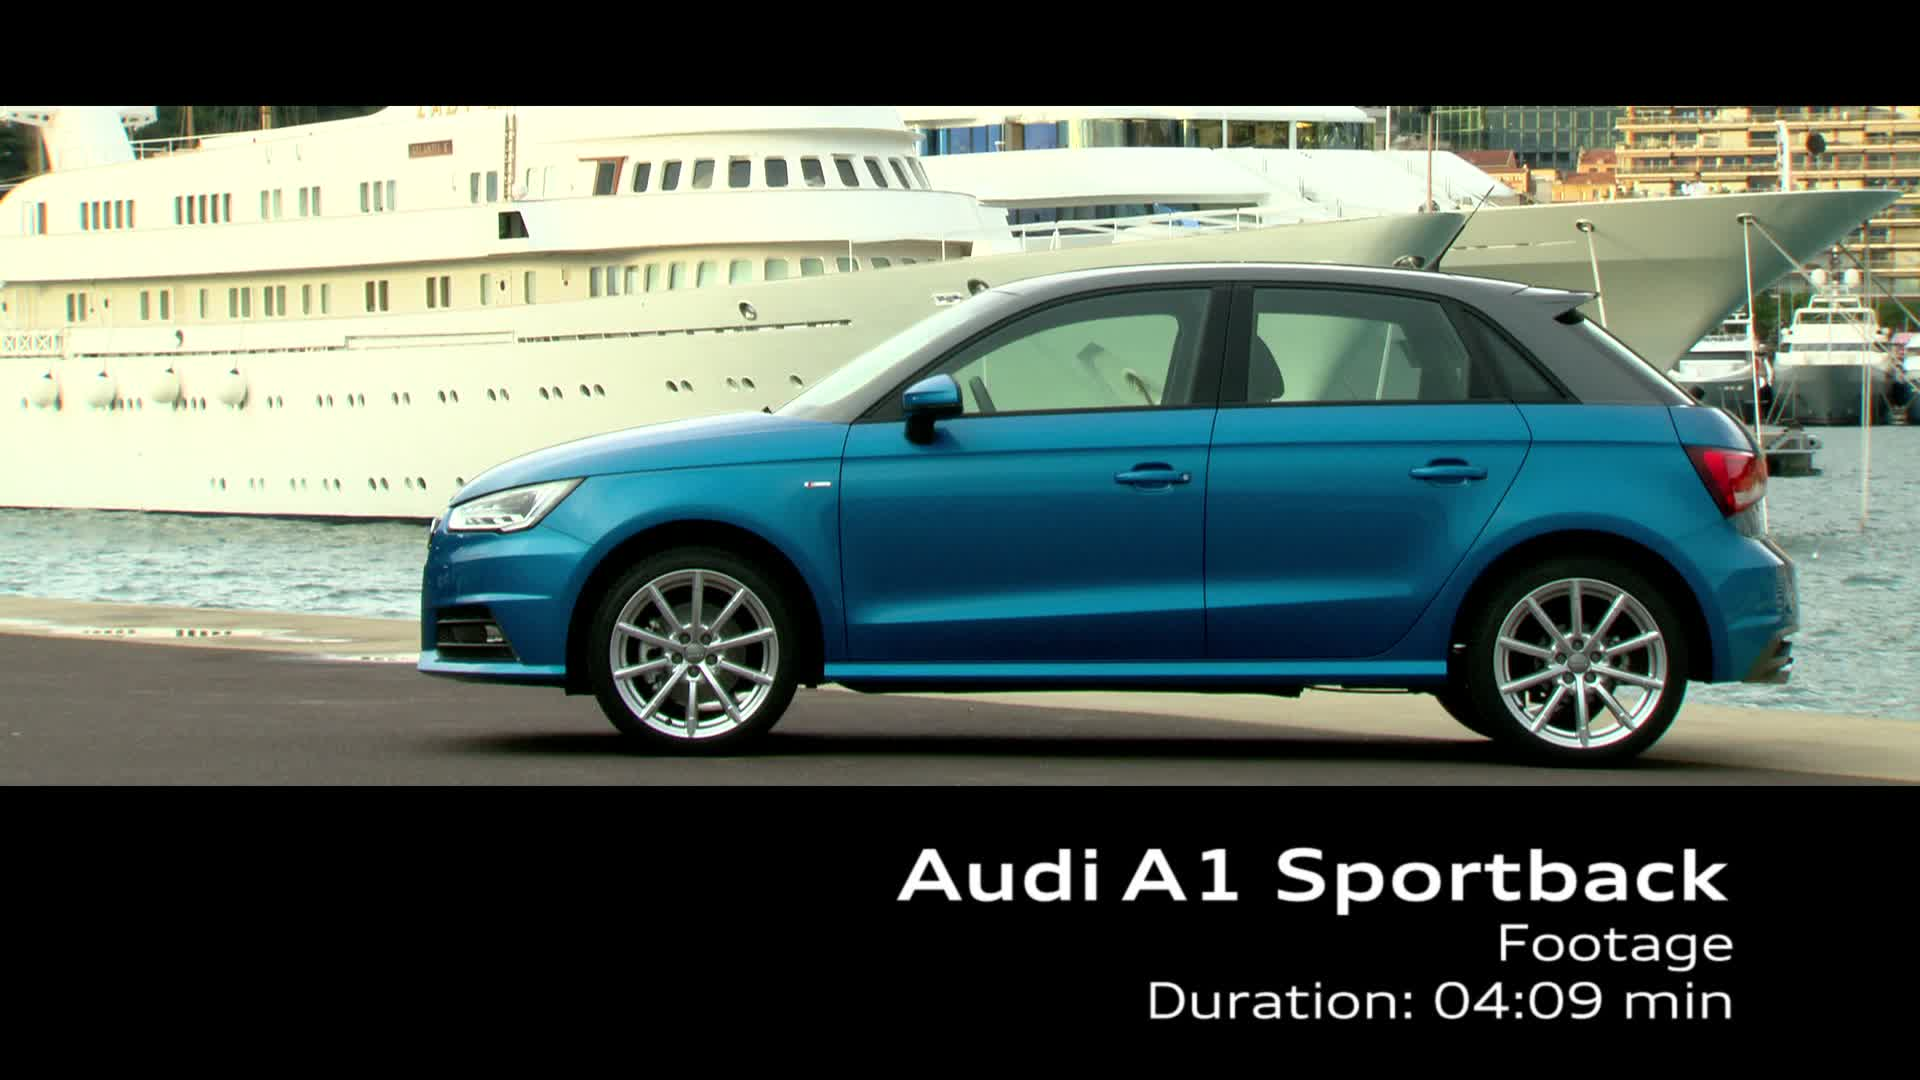 The new Audi A1 Sportback - Footage